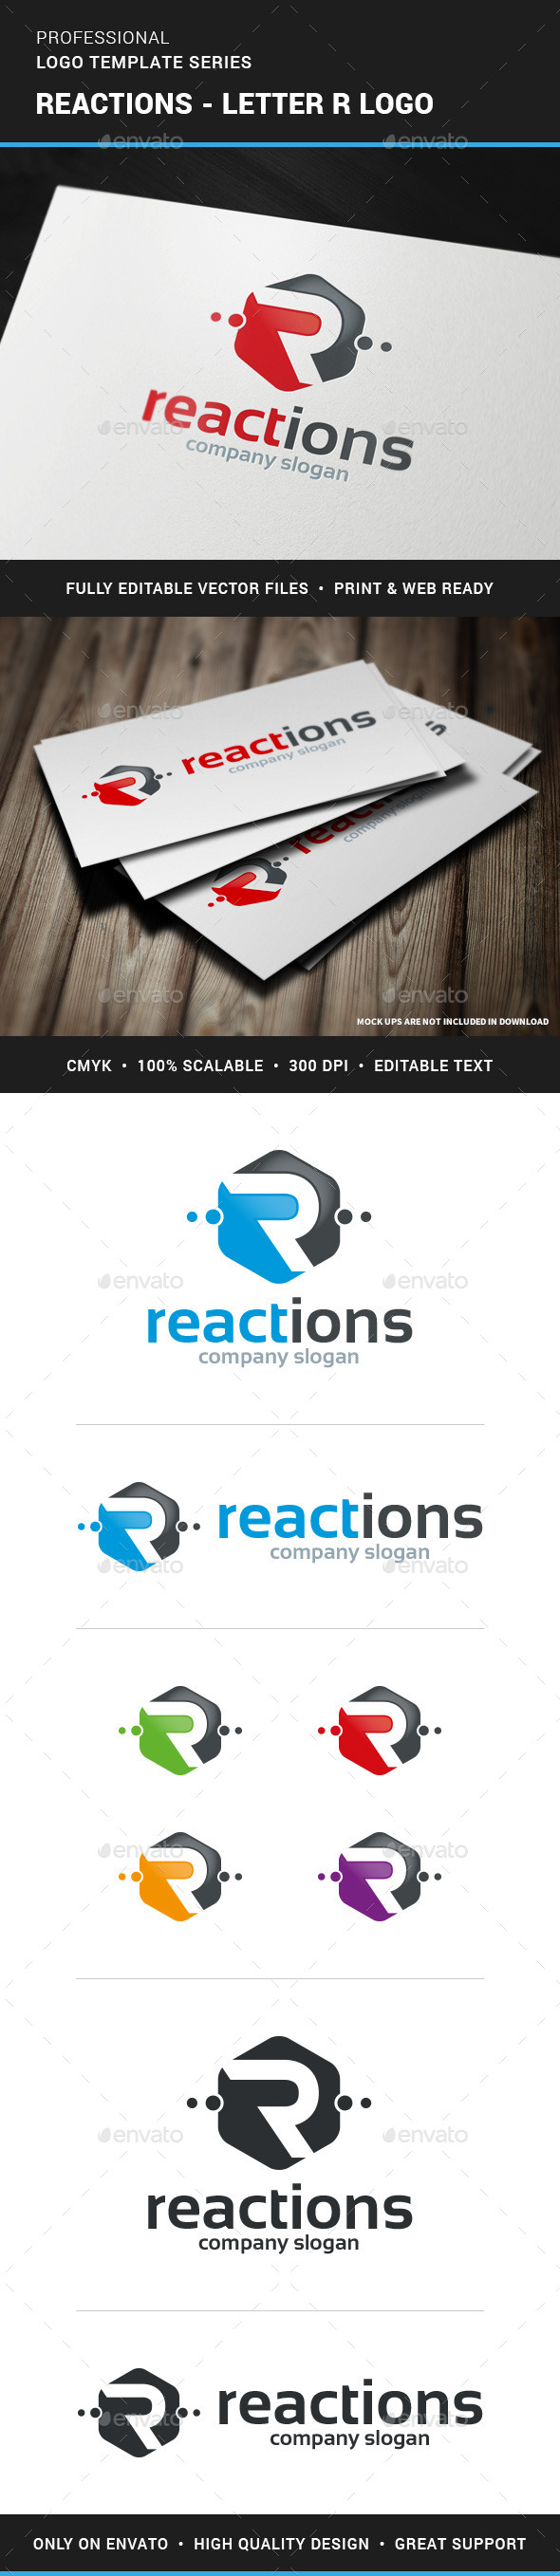 GraphicRiver Reactions Letter R Logo 11801312